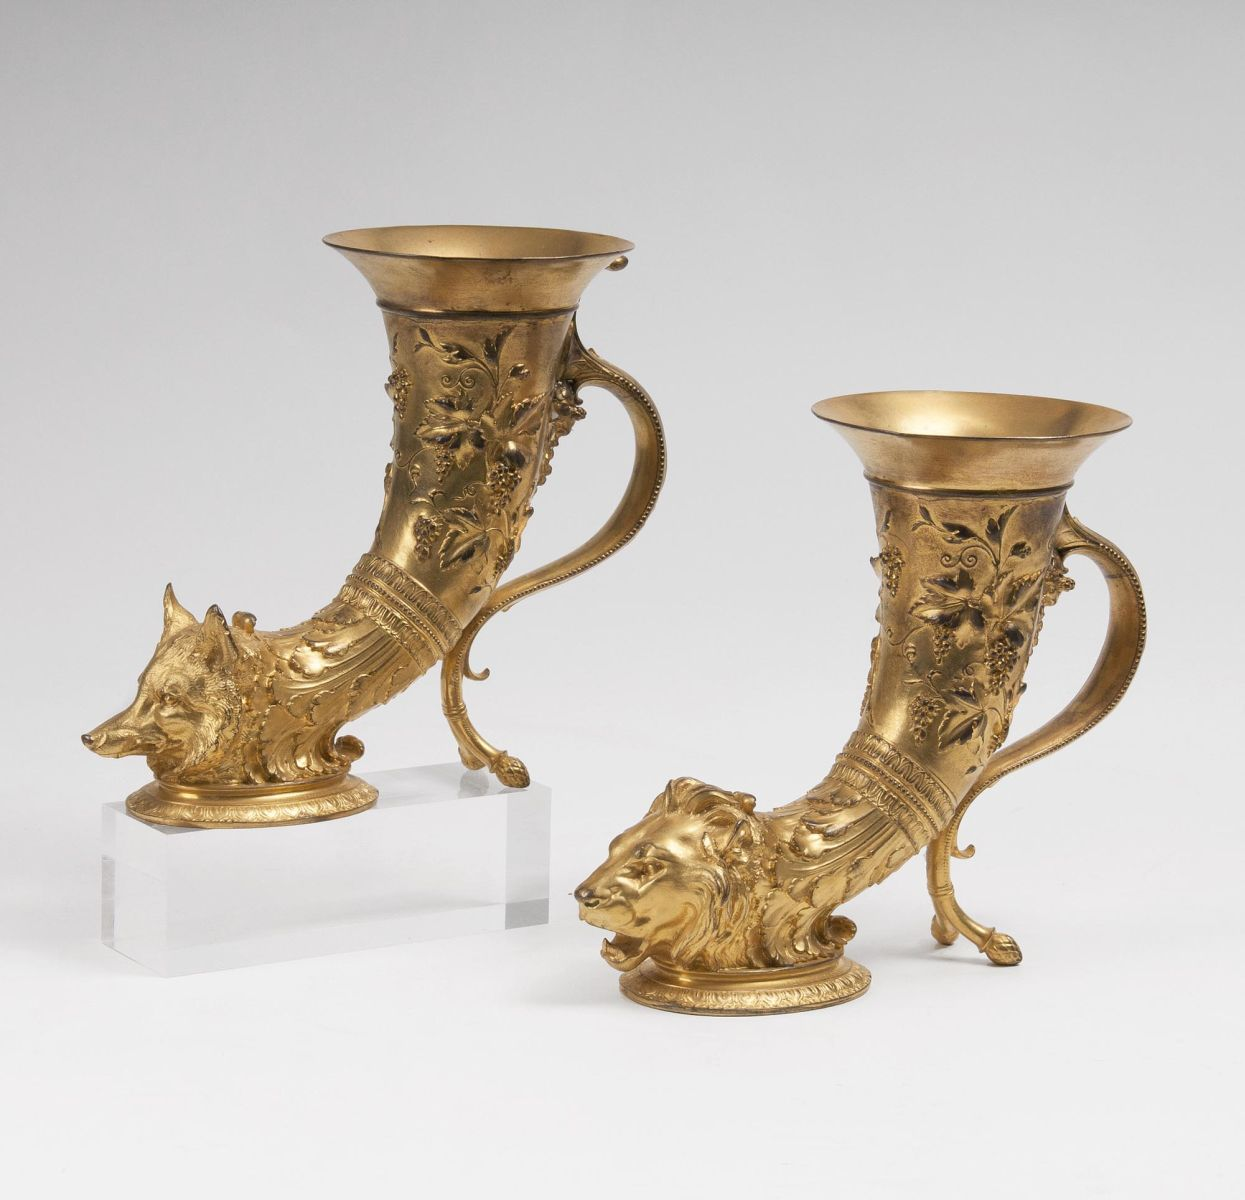 A Pair of Napoléon III. splendid Rhytons with Fox or Lion Head Finial for Maison Barbedienne